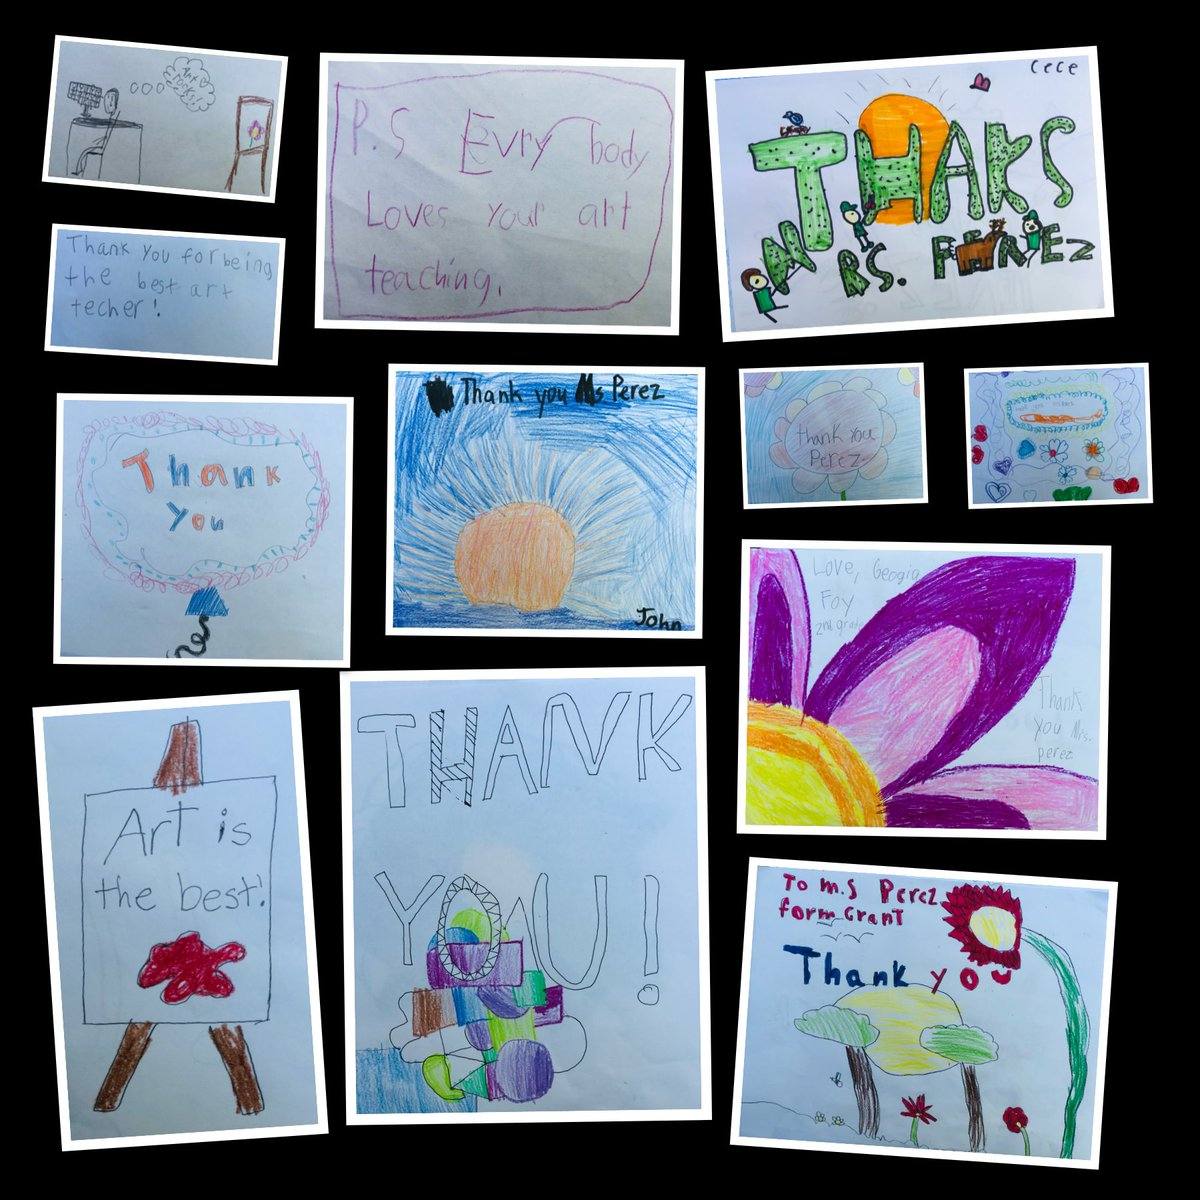 These beautiful and thoughtful messages made my week! You never know what made a difference. Happy Teacher Appreciation Week! <a target='_blank' href='http://twitter.com/ATS_Davies'>@ATS_Davies</a> <a target='_blank' href='http://twitter.com/APS_ATS'>@APS_ATS</a> <a target='_blank' href='http://twitter.com/APSArts'>@APSArts</a> <a target='_blank' href='http://twitter.com/ats_pta'>@ats_pta</a> <a target='_blank' href='http://search.twitter.com/search?q=APSartsthrive'><a target='_blank' href='https://twitter.com/hashtag/APSartsthrive?src=hash'>#APSartsthrive</a></a> <a target='_blank' href='https://t.co/ER5xx20xS3'>https://t.co/ER5xx20xS3</a>